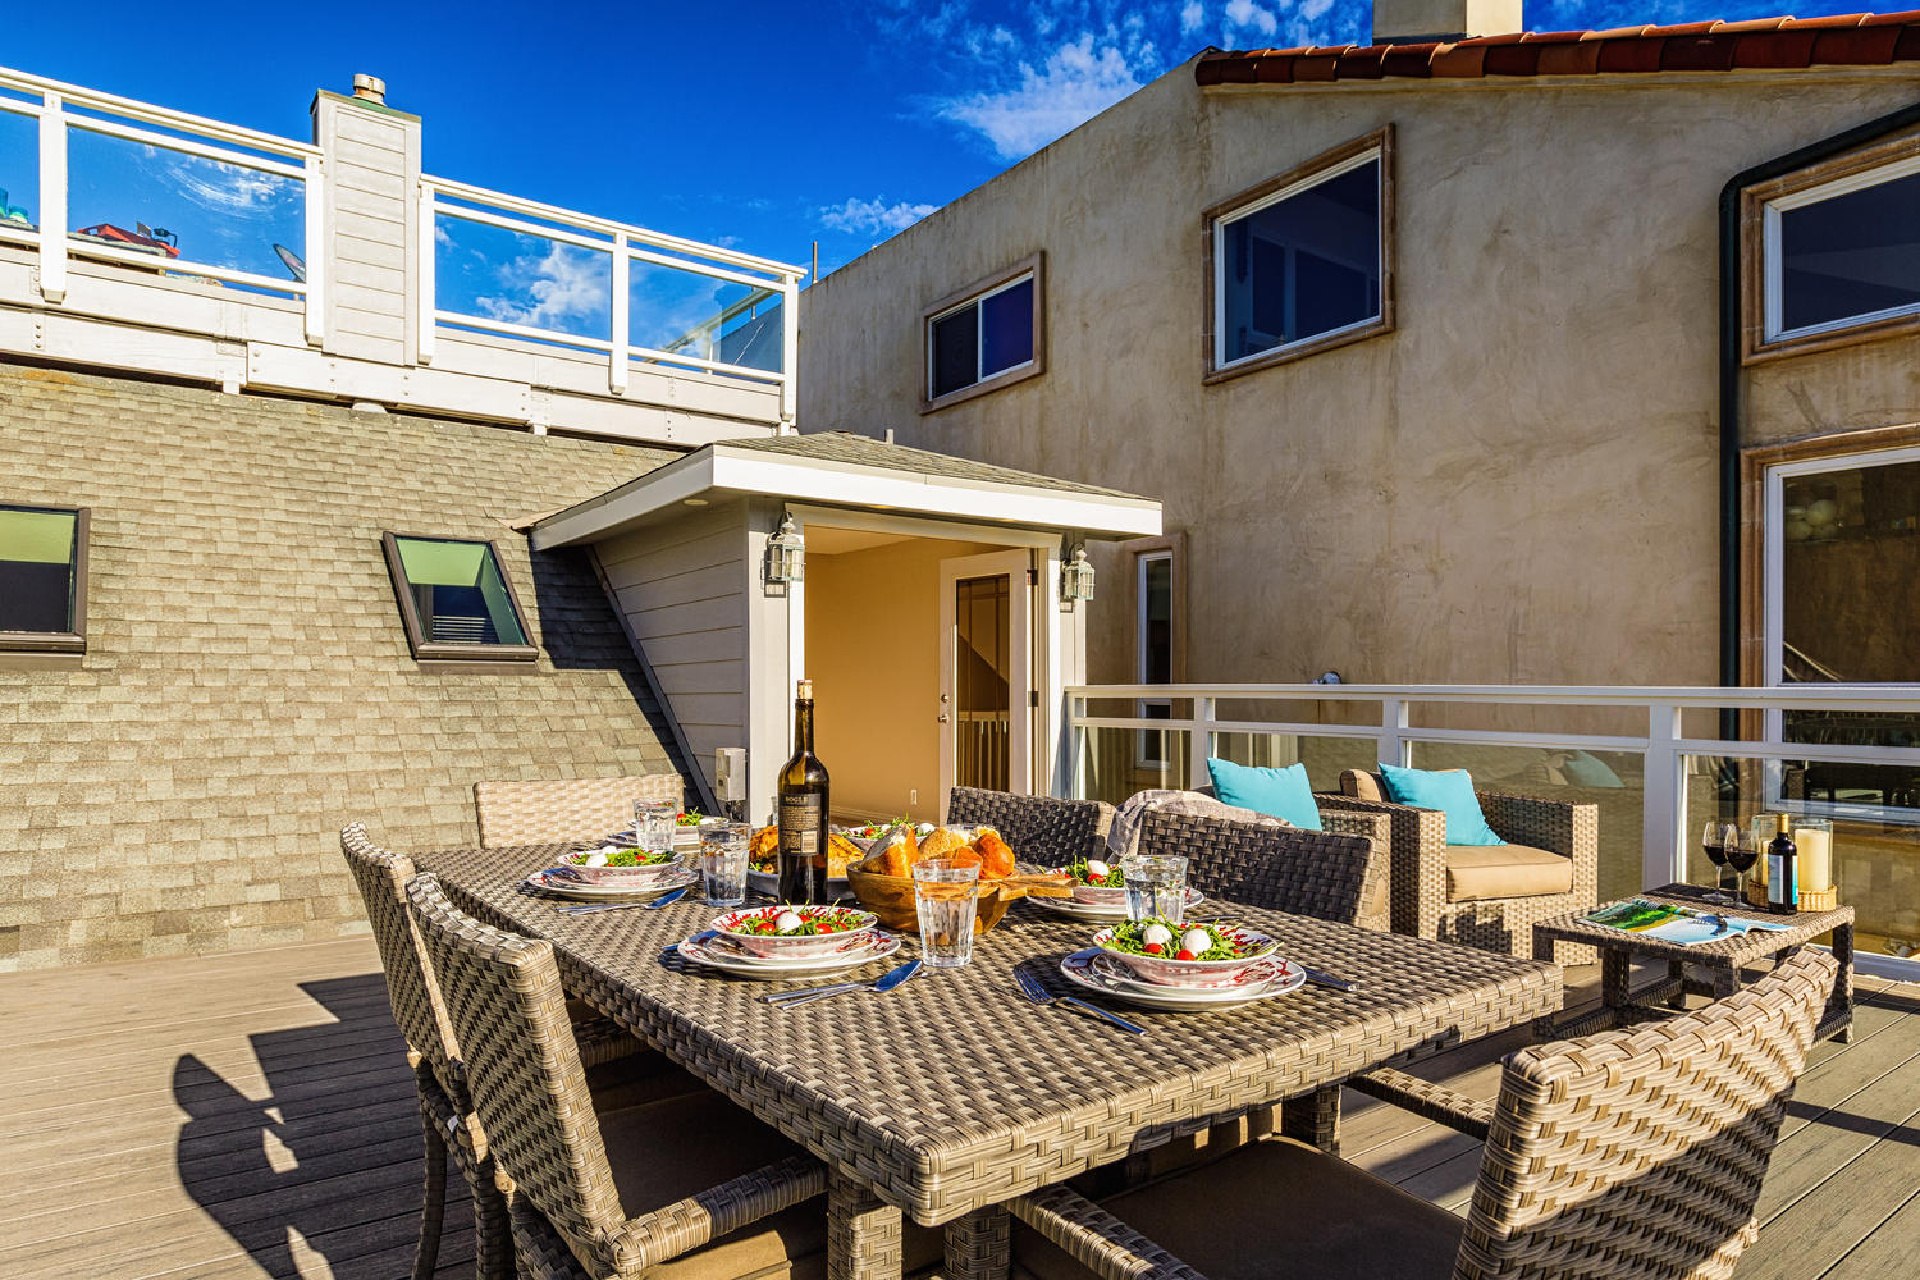 http://www.addressrealestate.com/media/images/blogs/38/2/b_18-1408-ocean-dr-oxnard-ca-93035-mls-size-012-7-balcony-1500x1000-72dpi.jpg